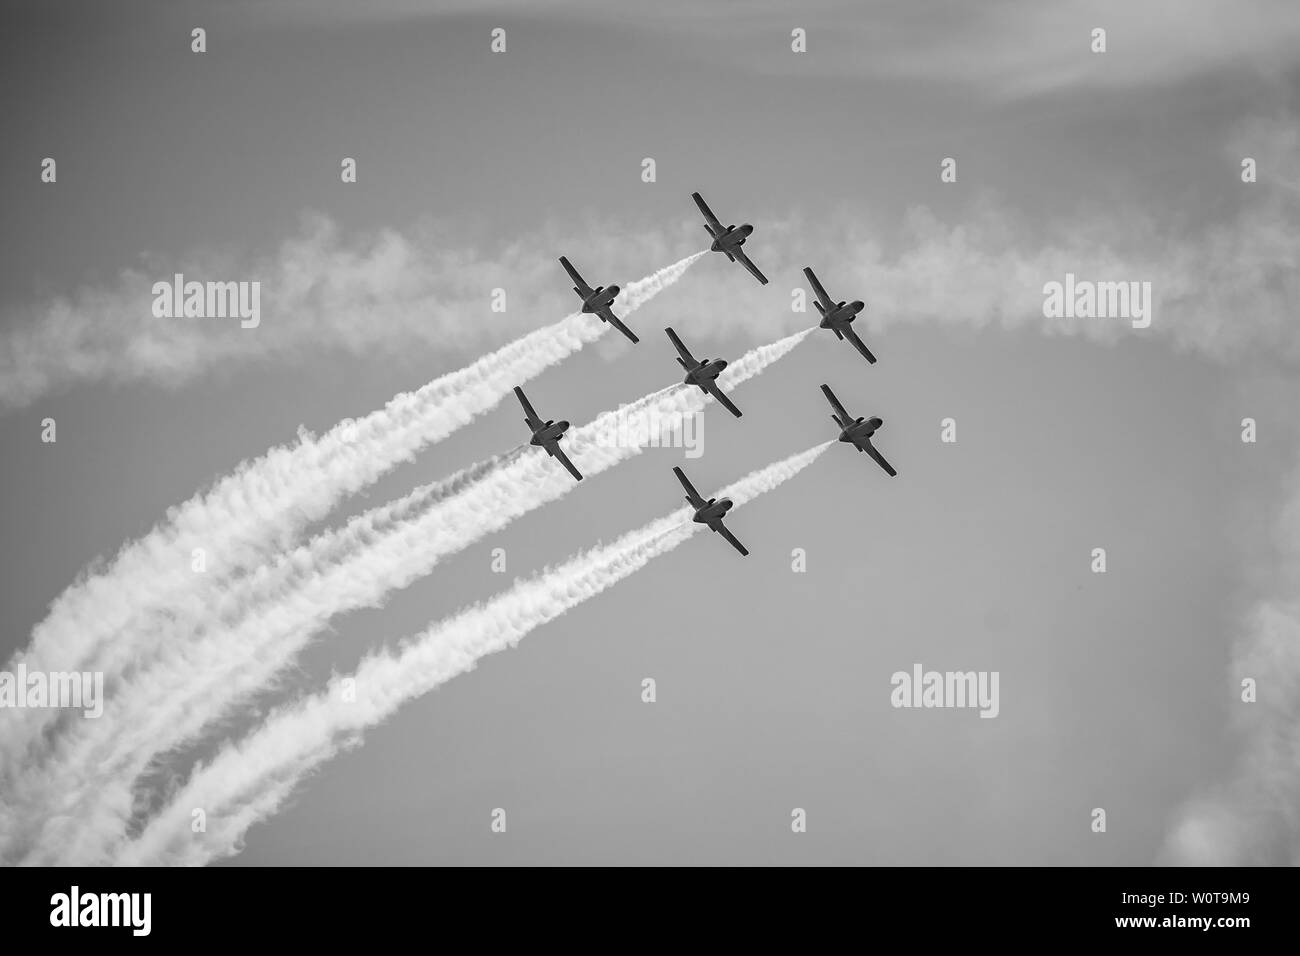 BERLIN, GERMANY - APRIL 28, 2018: Demonstration flight by the aerobatic team Patrulla Aguila (Eagle Patrol). Black and white. Exhibition ILA Berlin Air Show 2018. - Stock Image